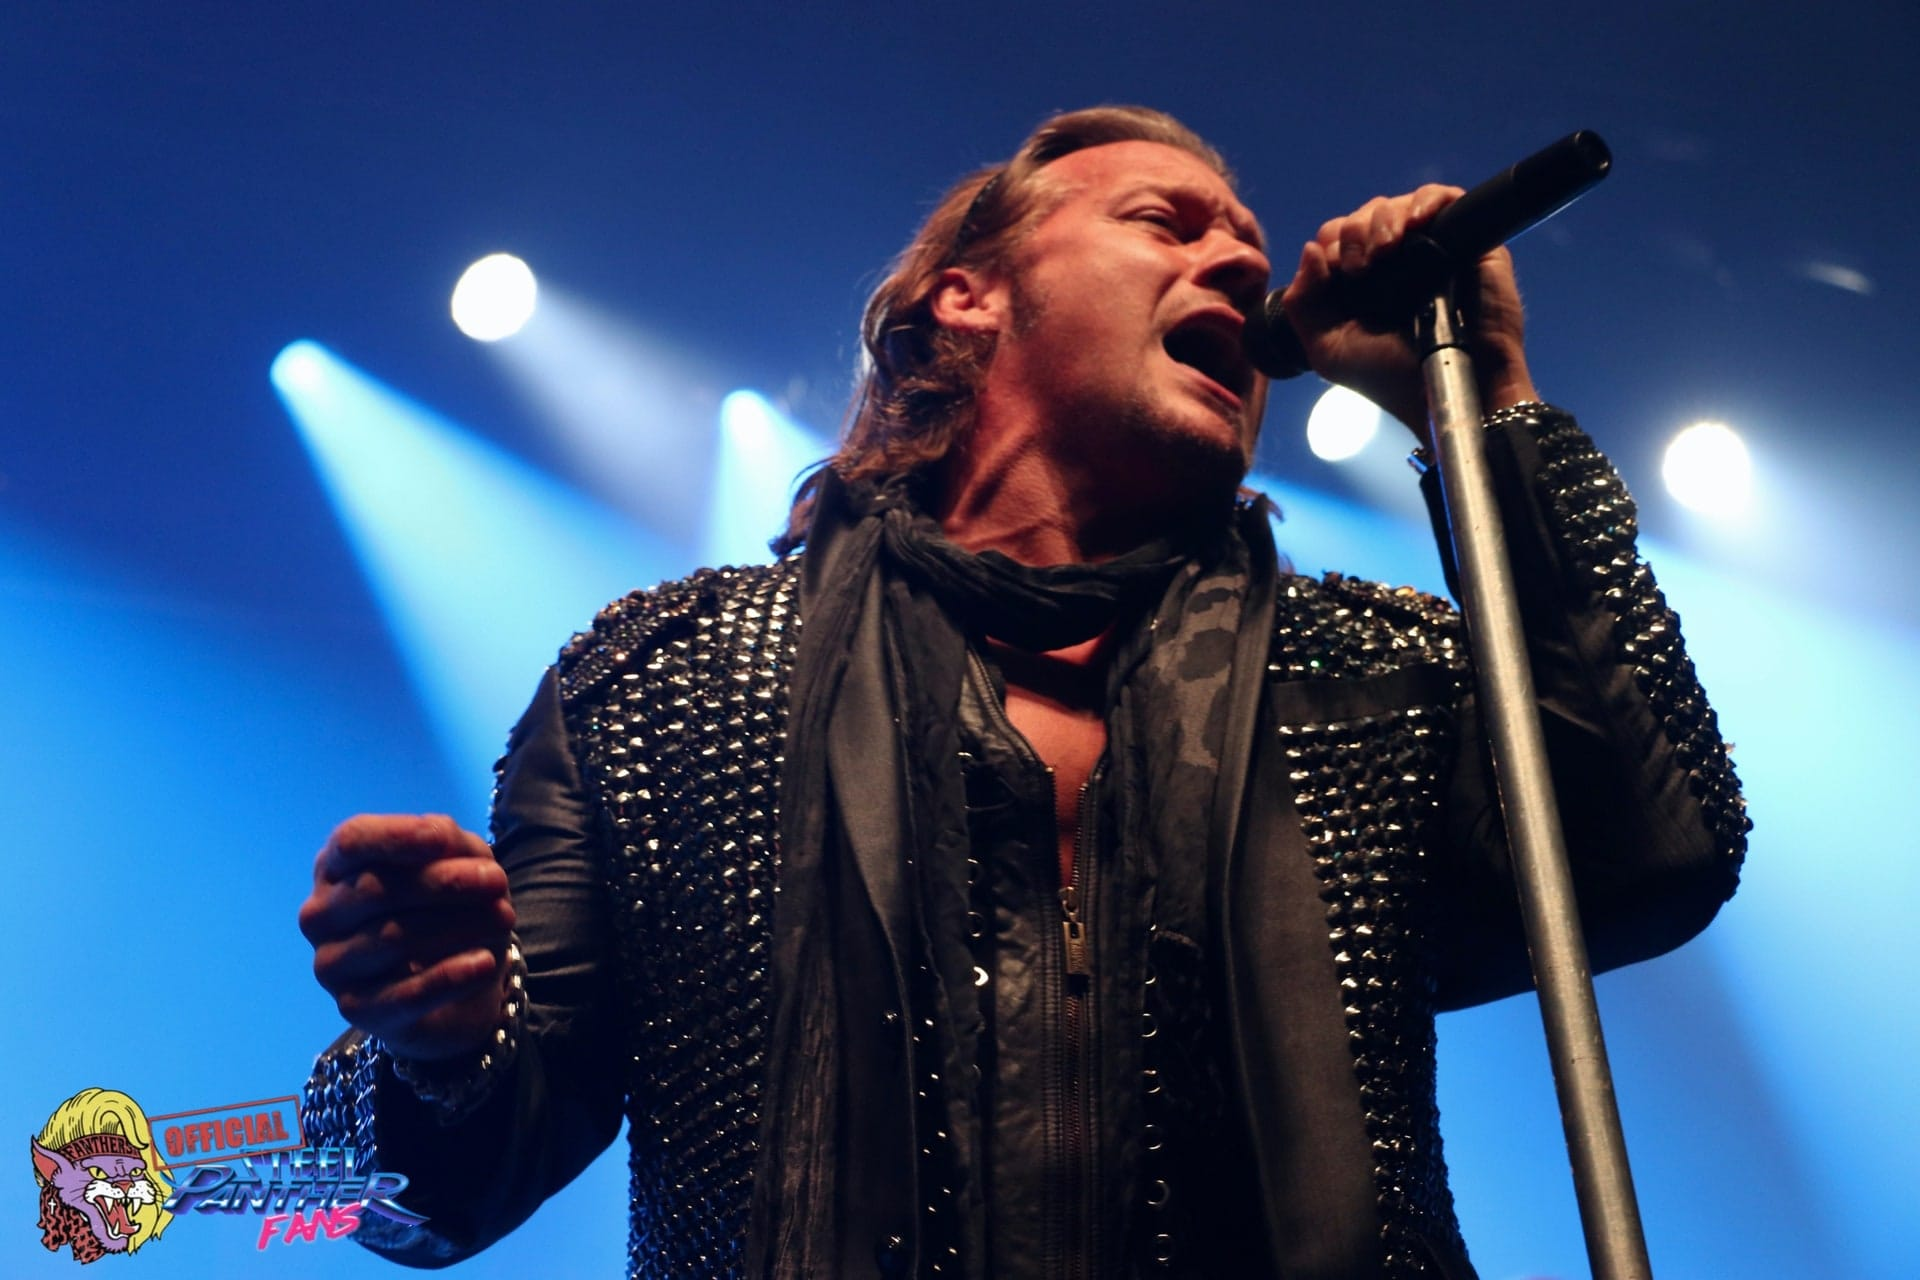 FOZZY am 28.01.2018 im L'Olympia Paris